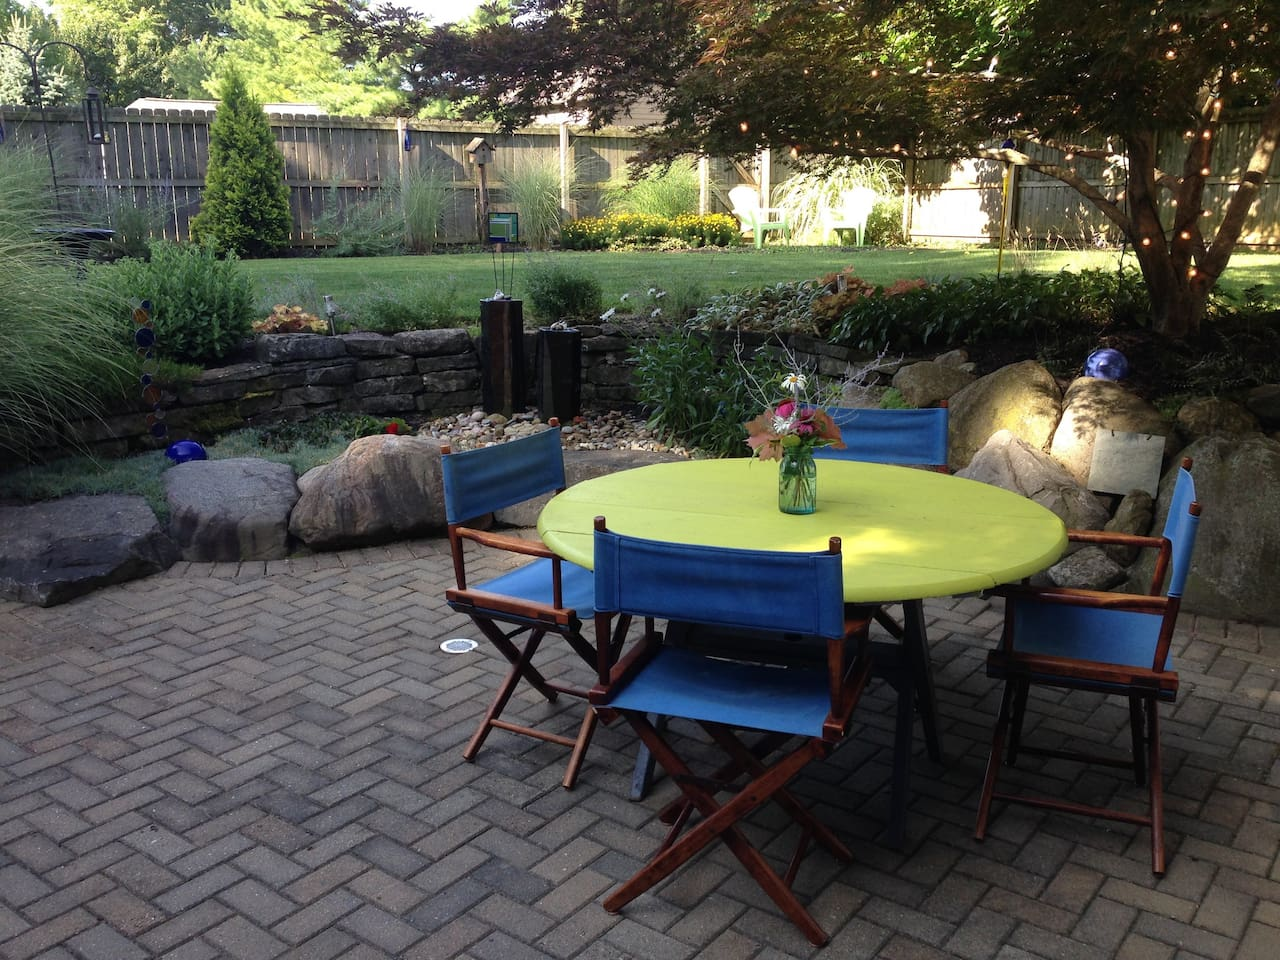 The peaceful private backyard is perfect for morning coffee, meditating or catching up on emails.